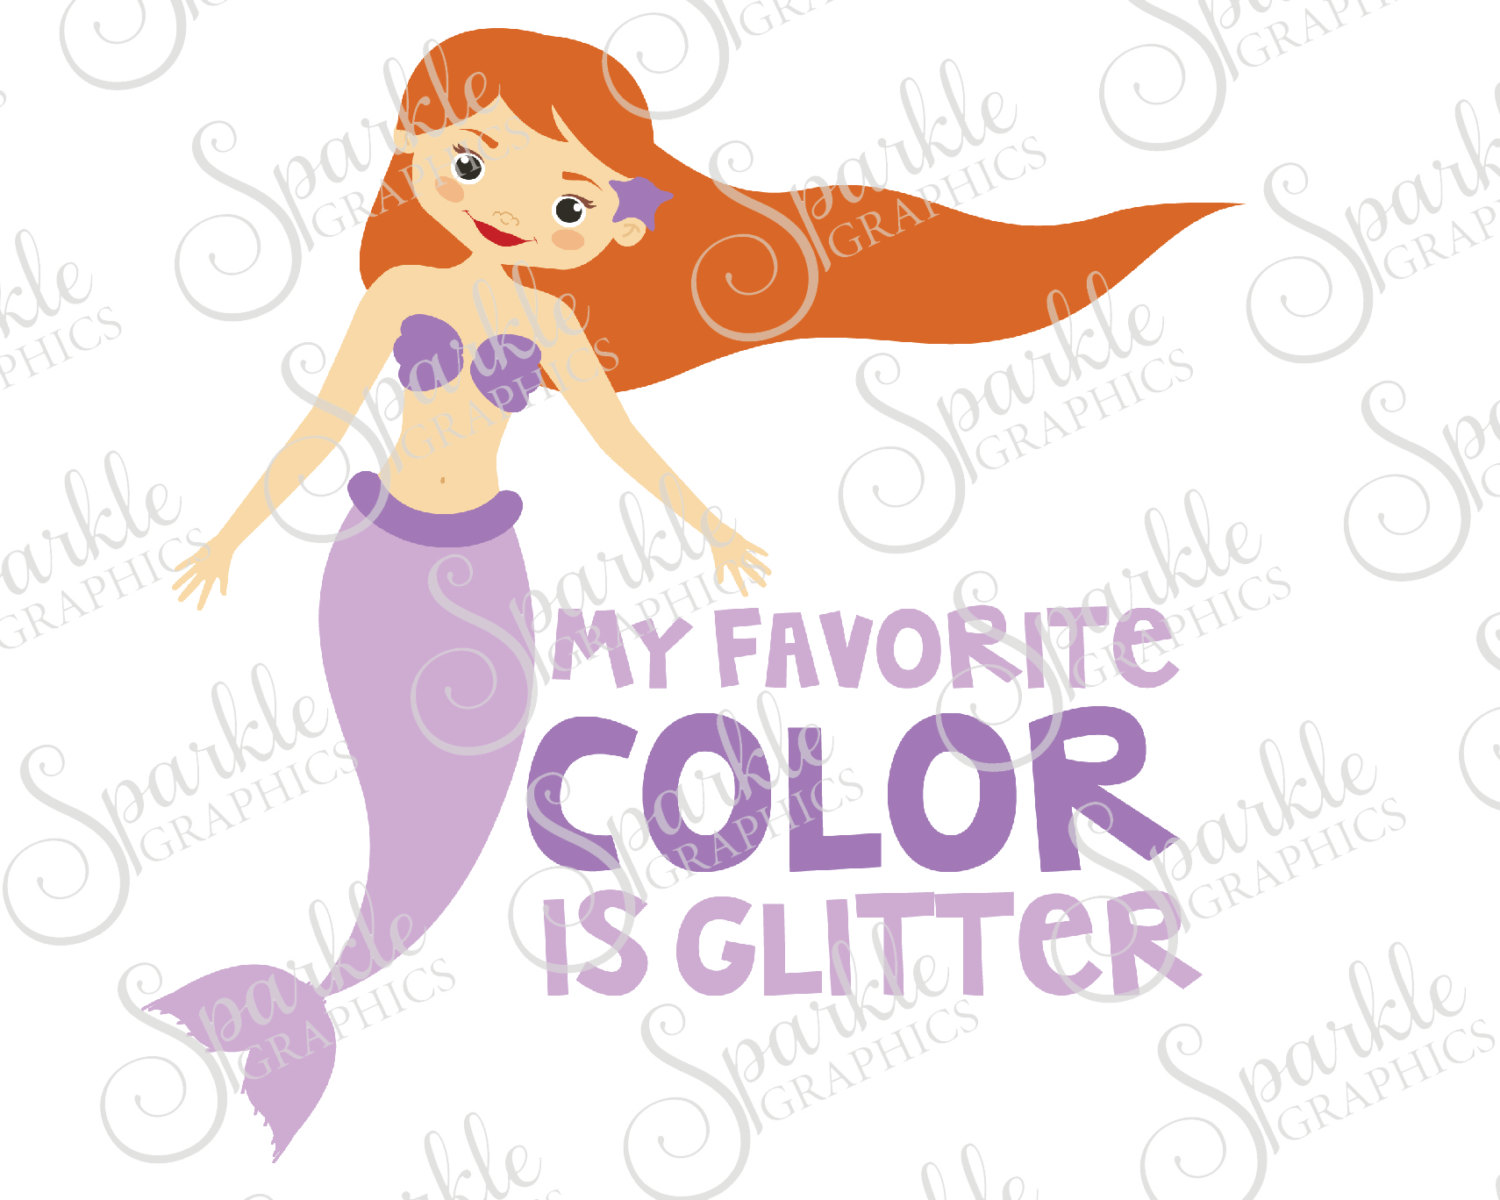 My Favorite Color Is Glitter Cut File Glitter Beach Summer Ocean.